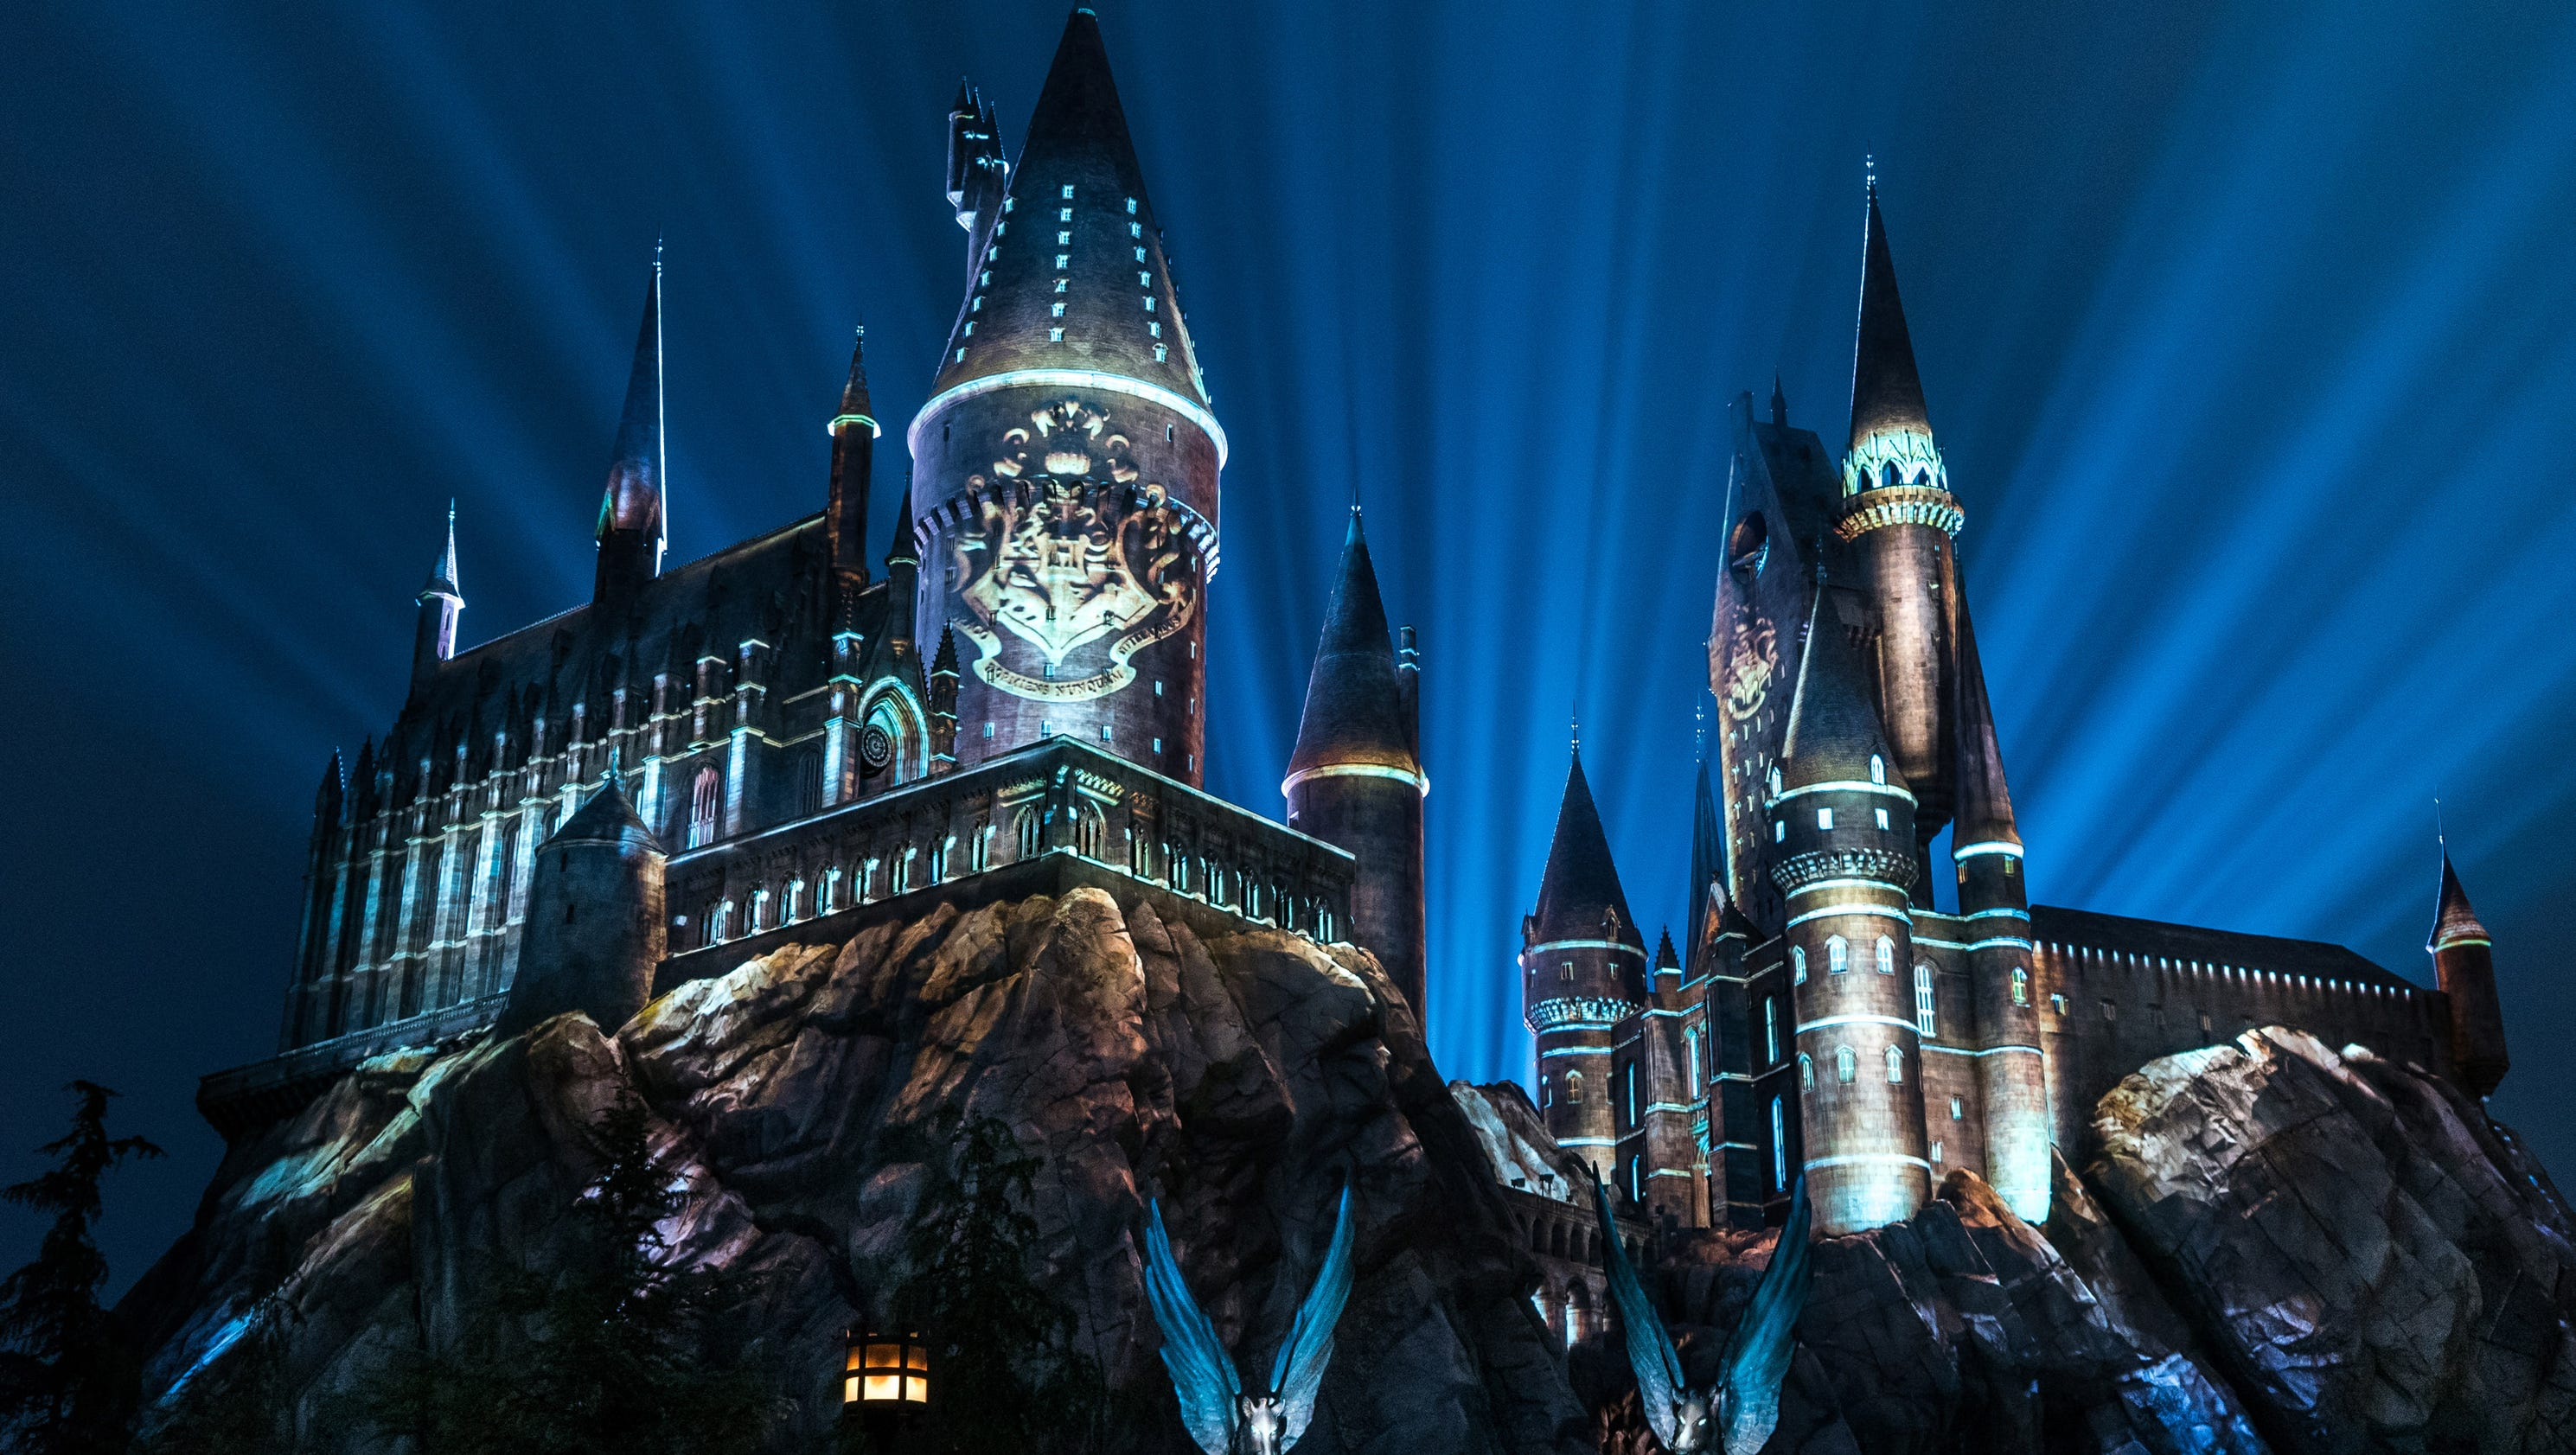 Harry Potter Book Light : A celebration of harry potter adds new magic at